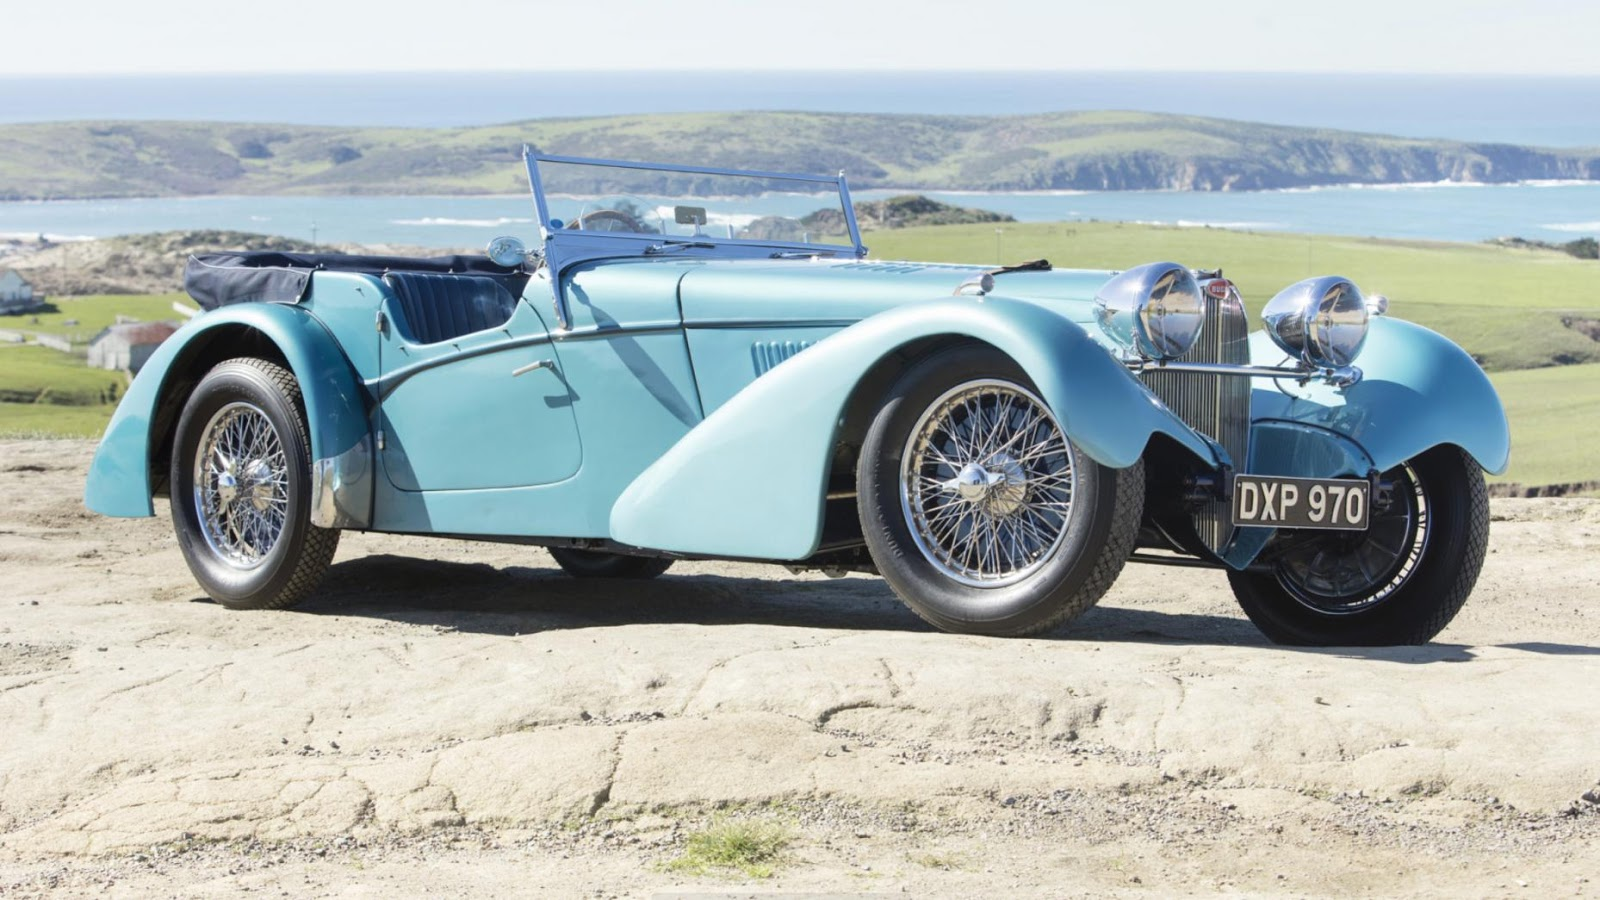 1937 Bugatti Type 57SC Sports Tourer: $9,735,000